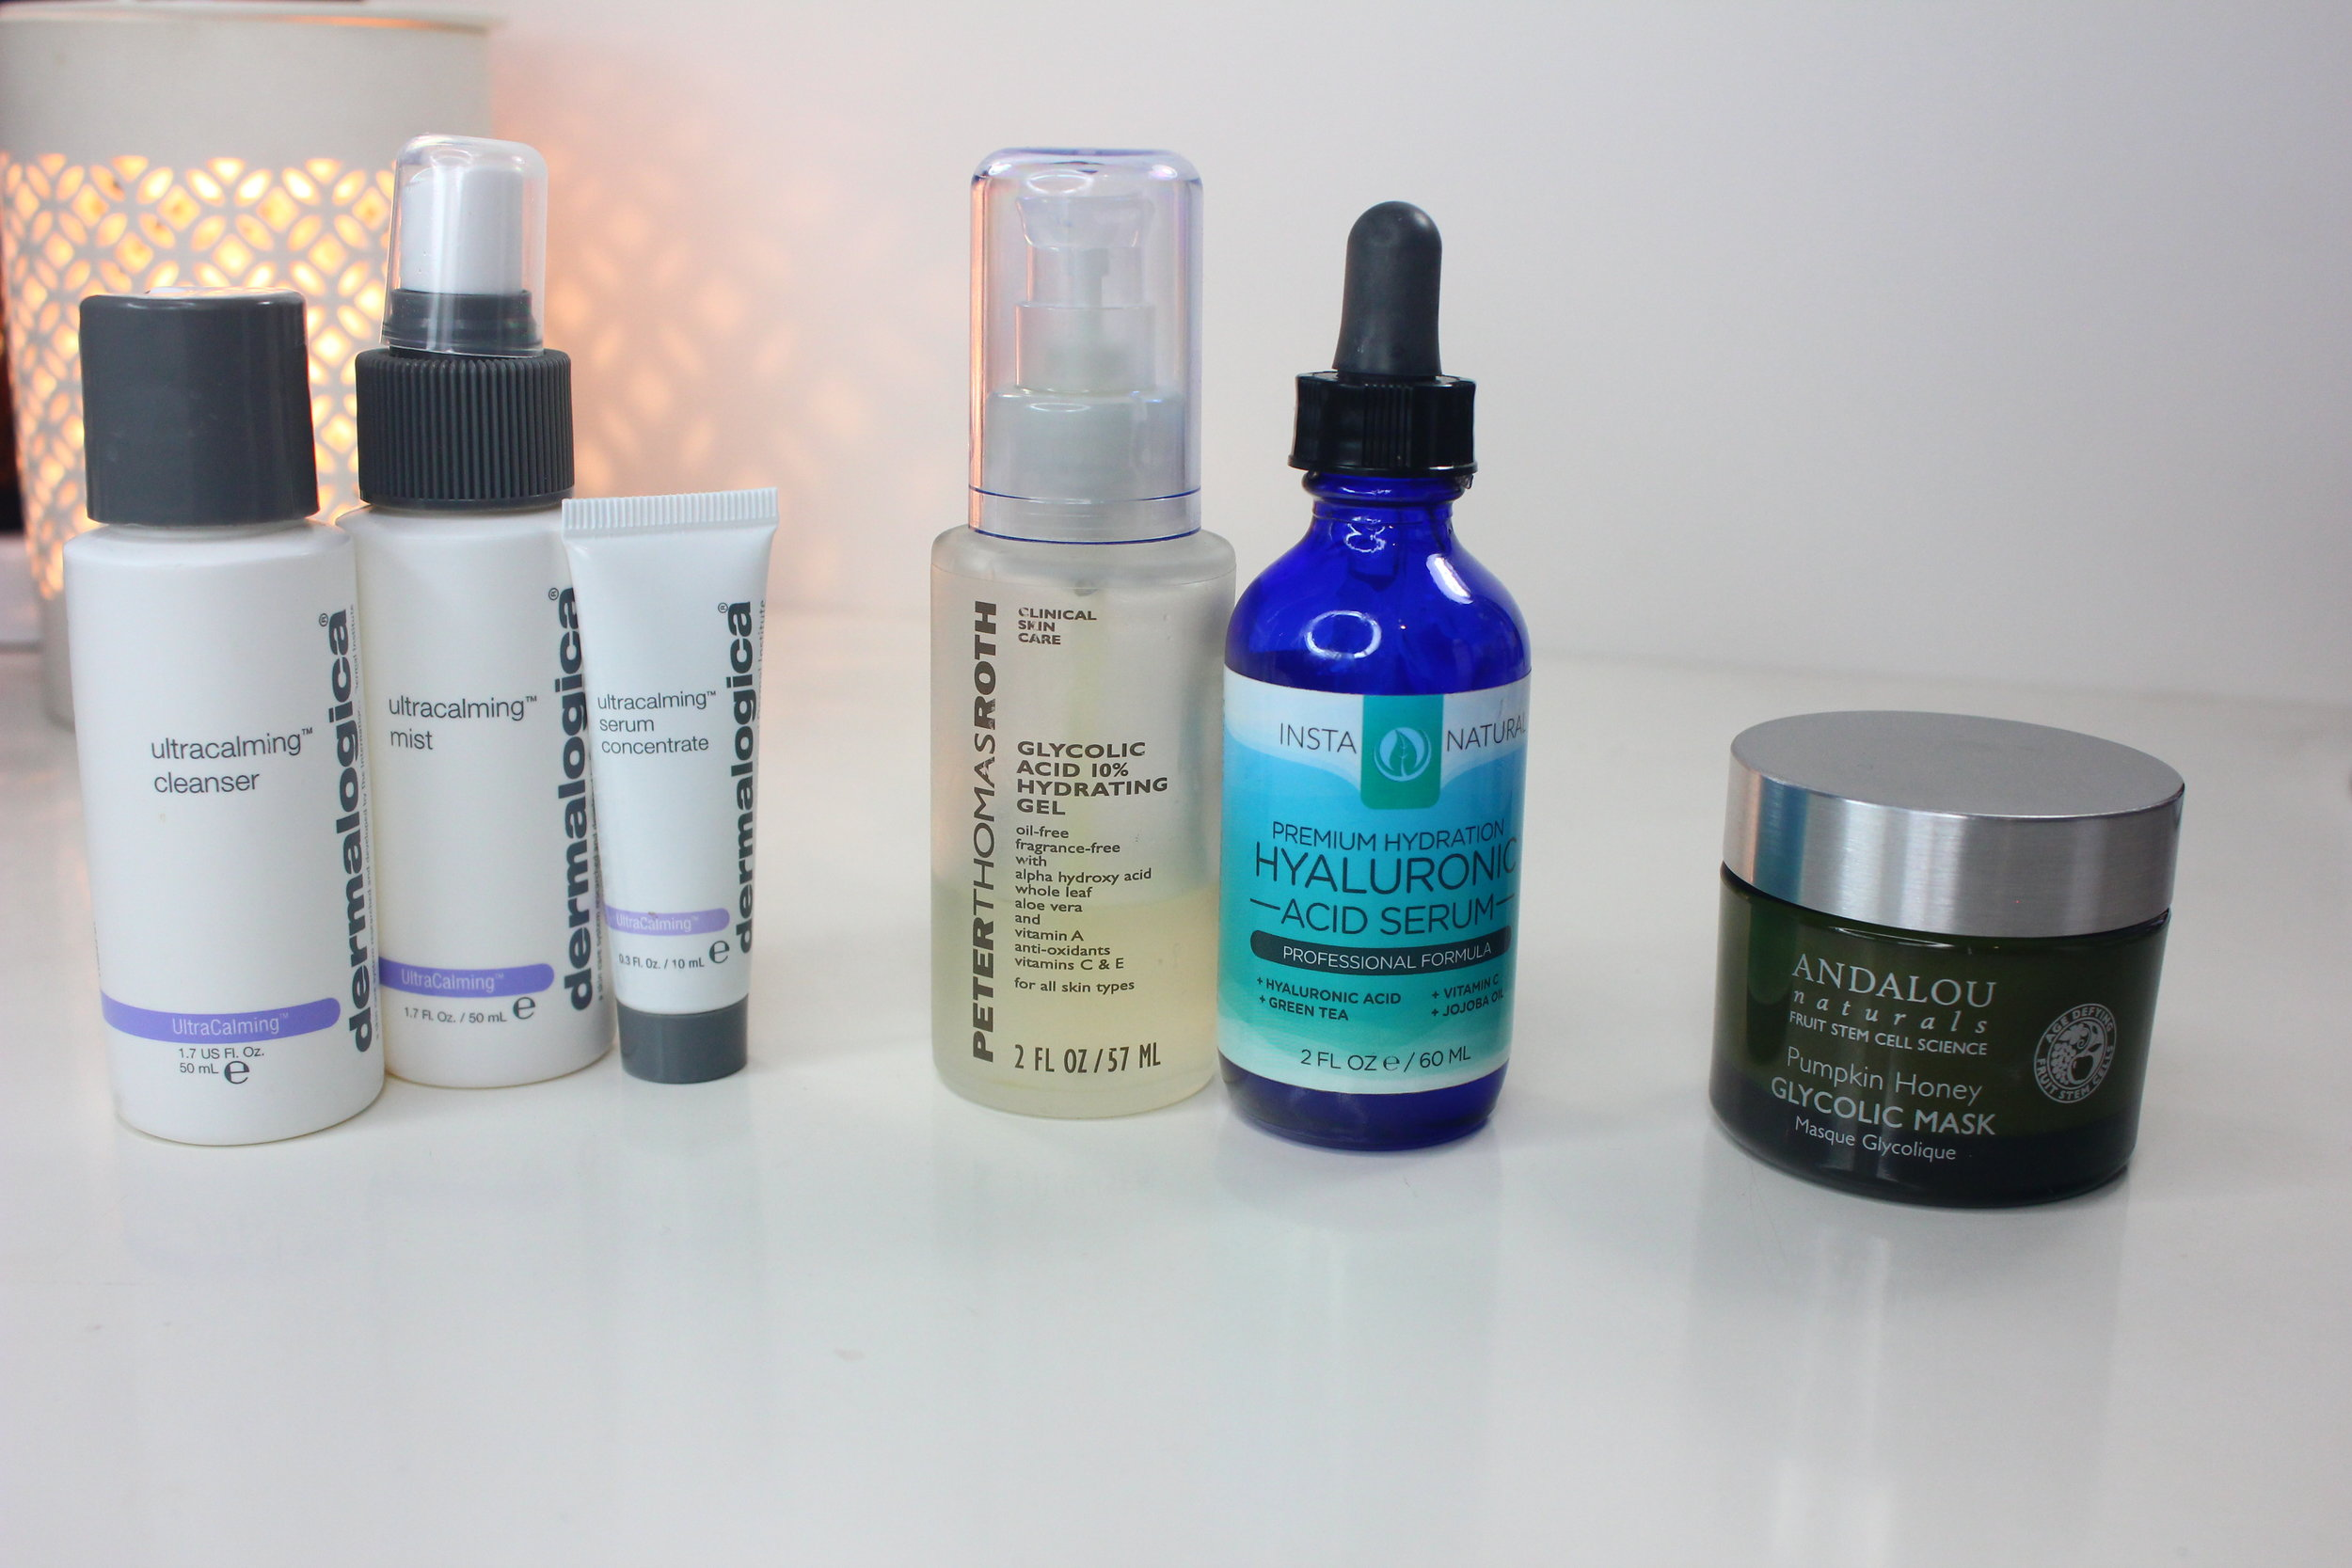 Skin Care Favorites - dermaologica, peter thomas roth, insta natural, andalou naturals